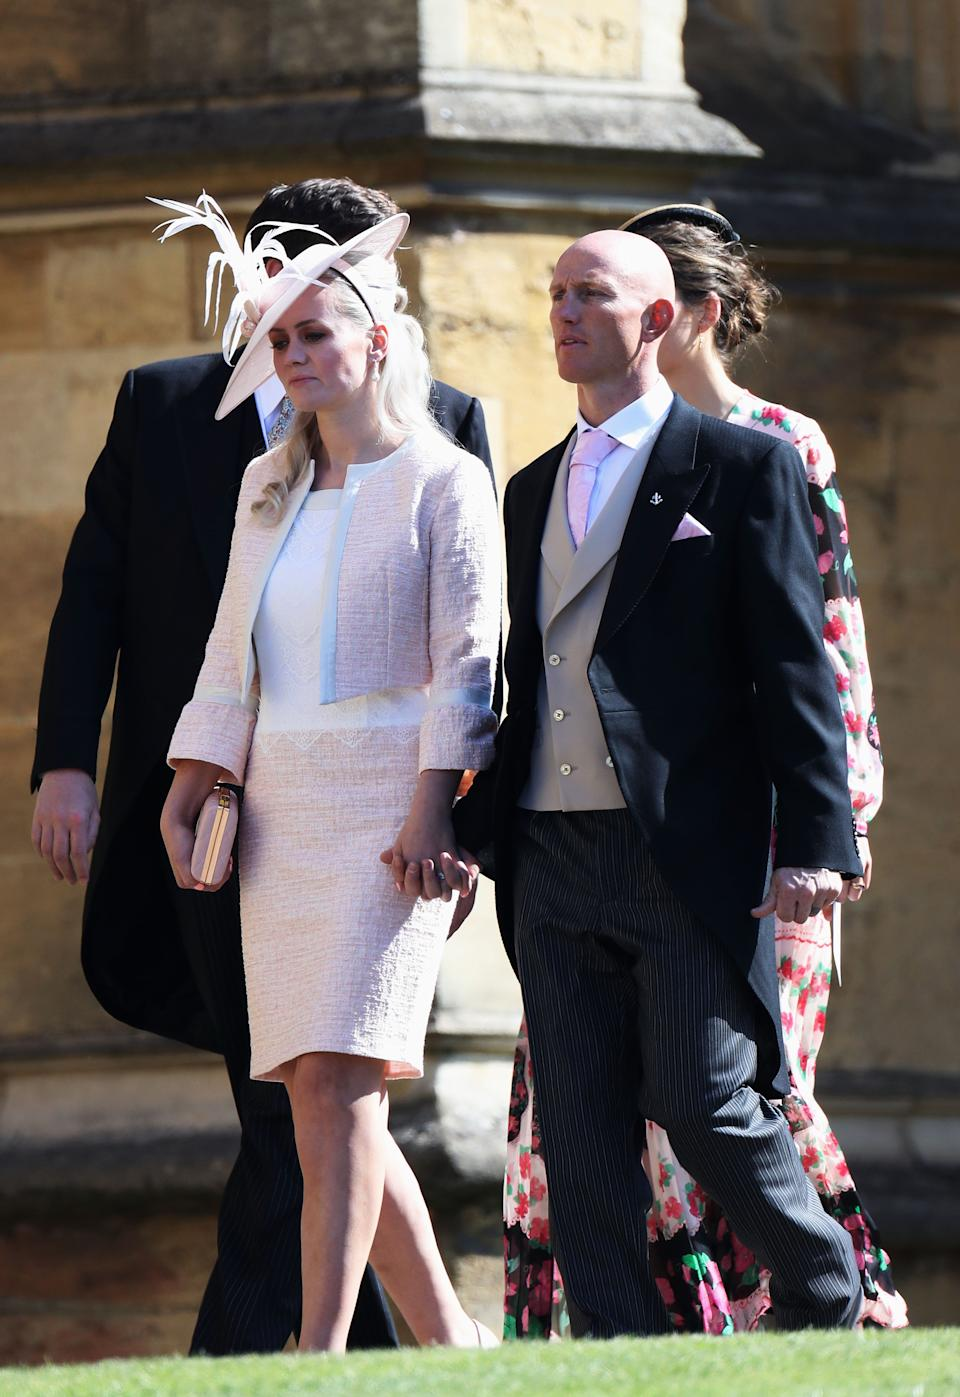 WINDSOR, ENGLAND - MAY 19:  Dean Stott (R) arrives at the wedding of Prince Harry to Ms Meghan Markle at St George's Chapel, Windsor Castle on May 19, 2018 in Windsor, England.  (Photo by Chris Jackson/Getty Images)